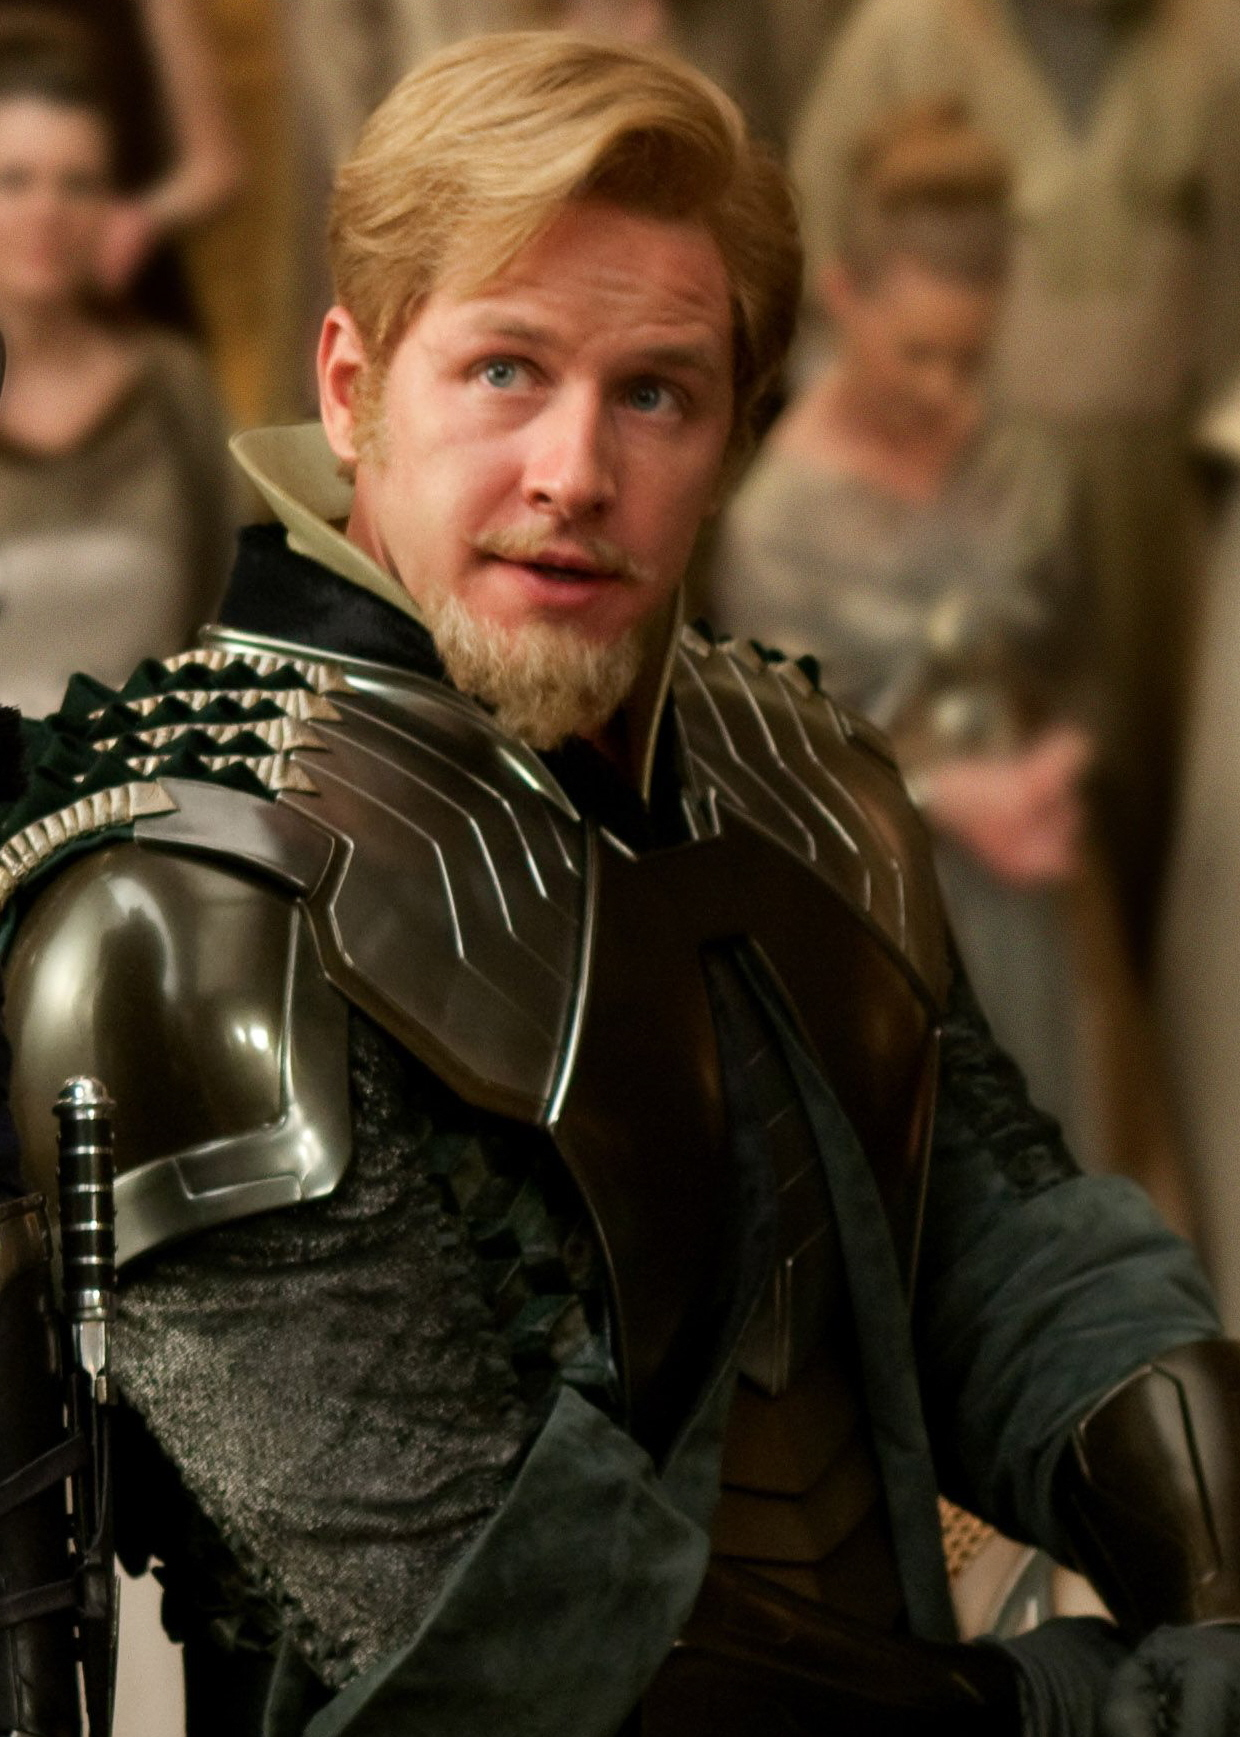 Fandral The Dashing Thor 2 Image - Fandral.jpg - ...